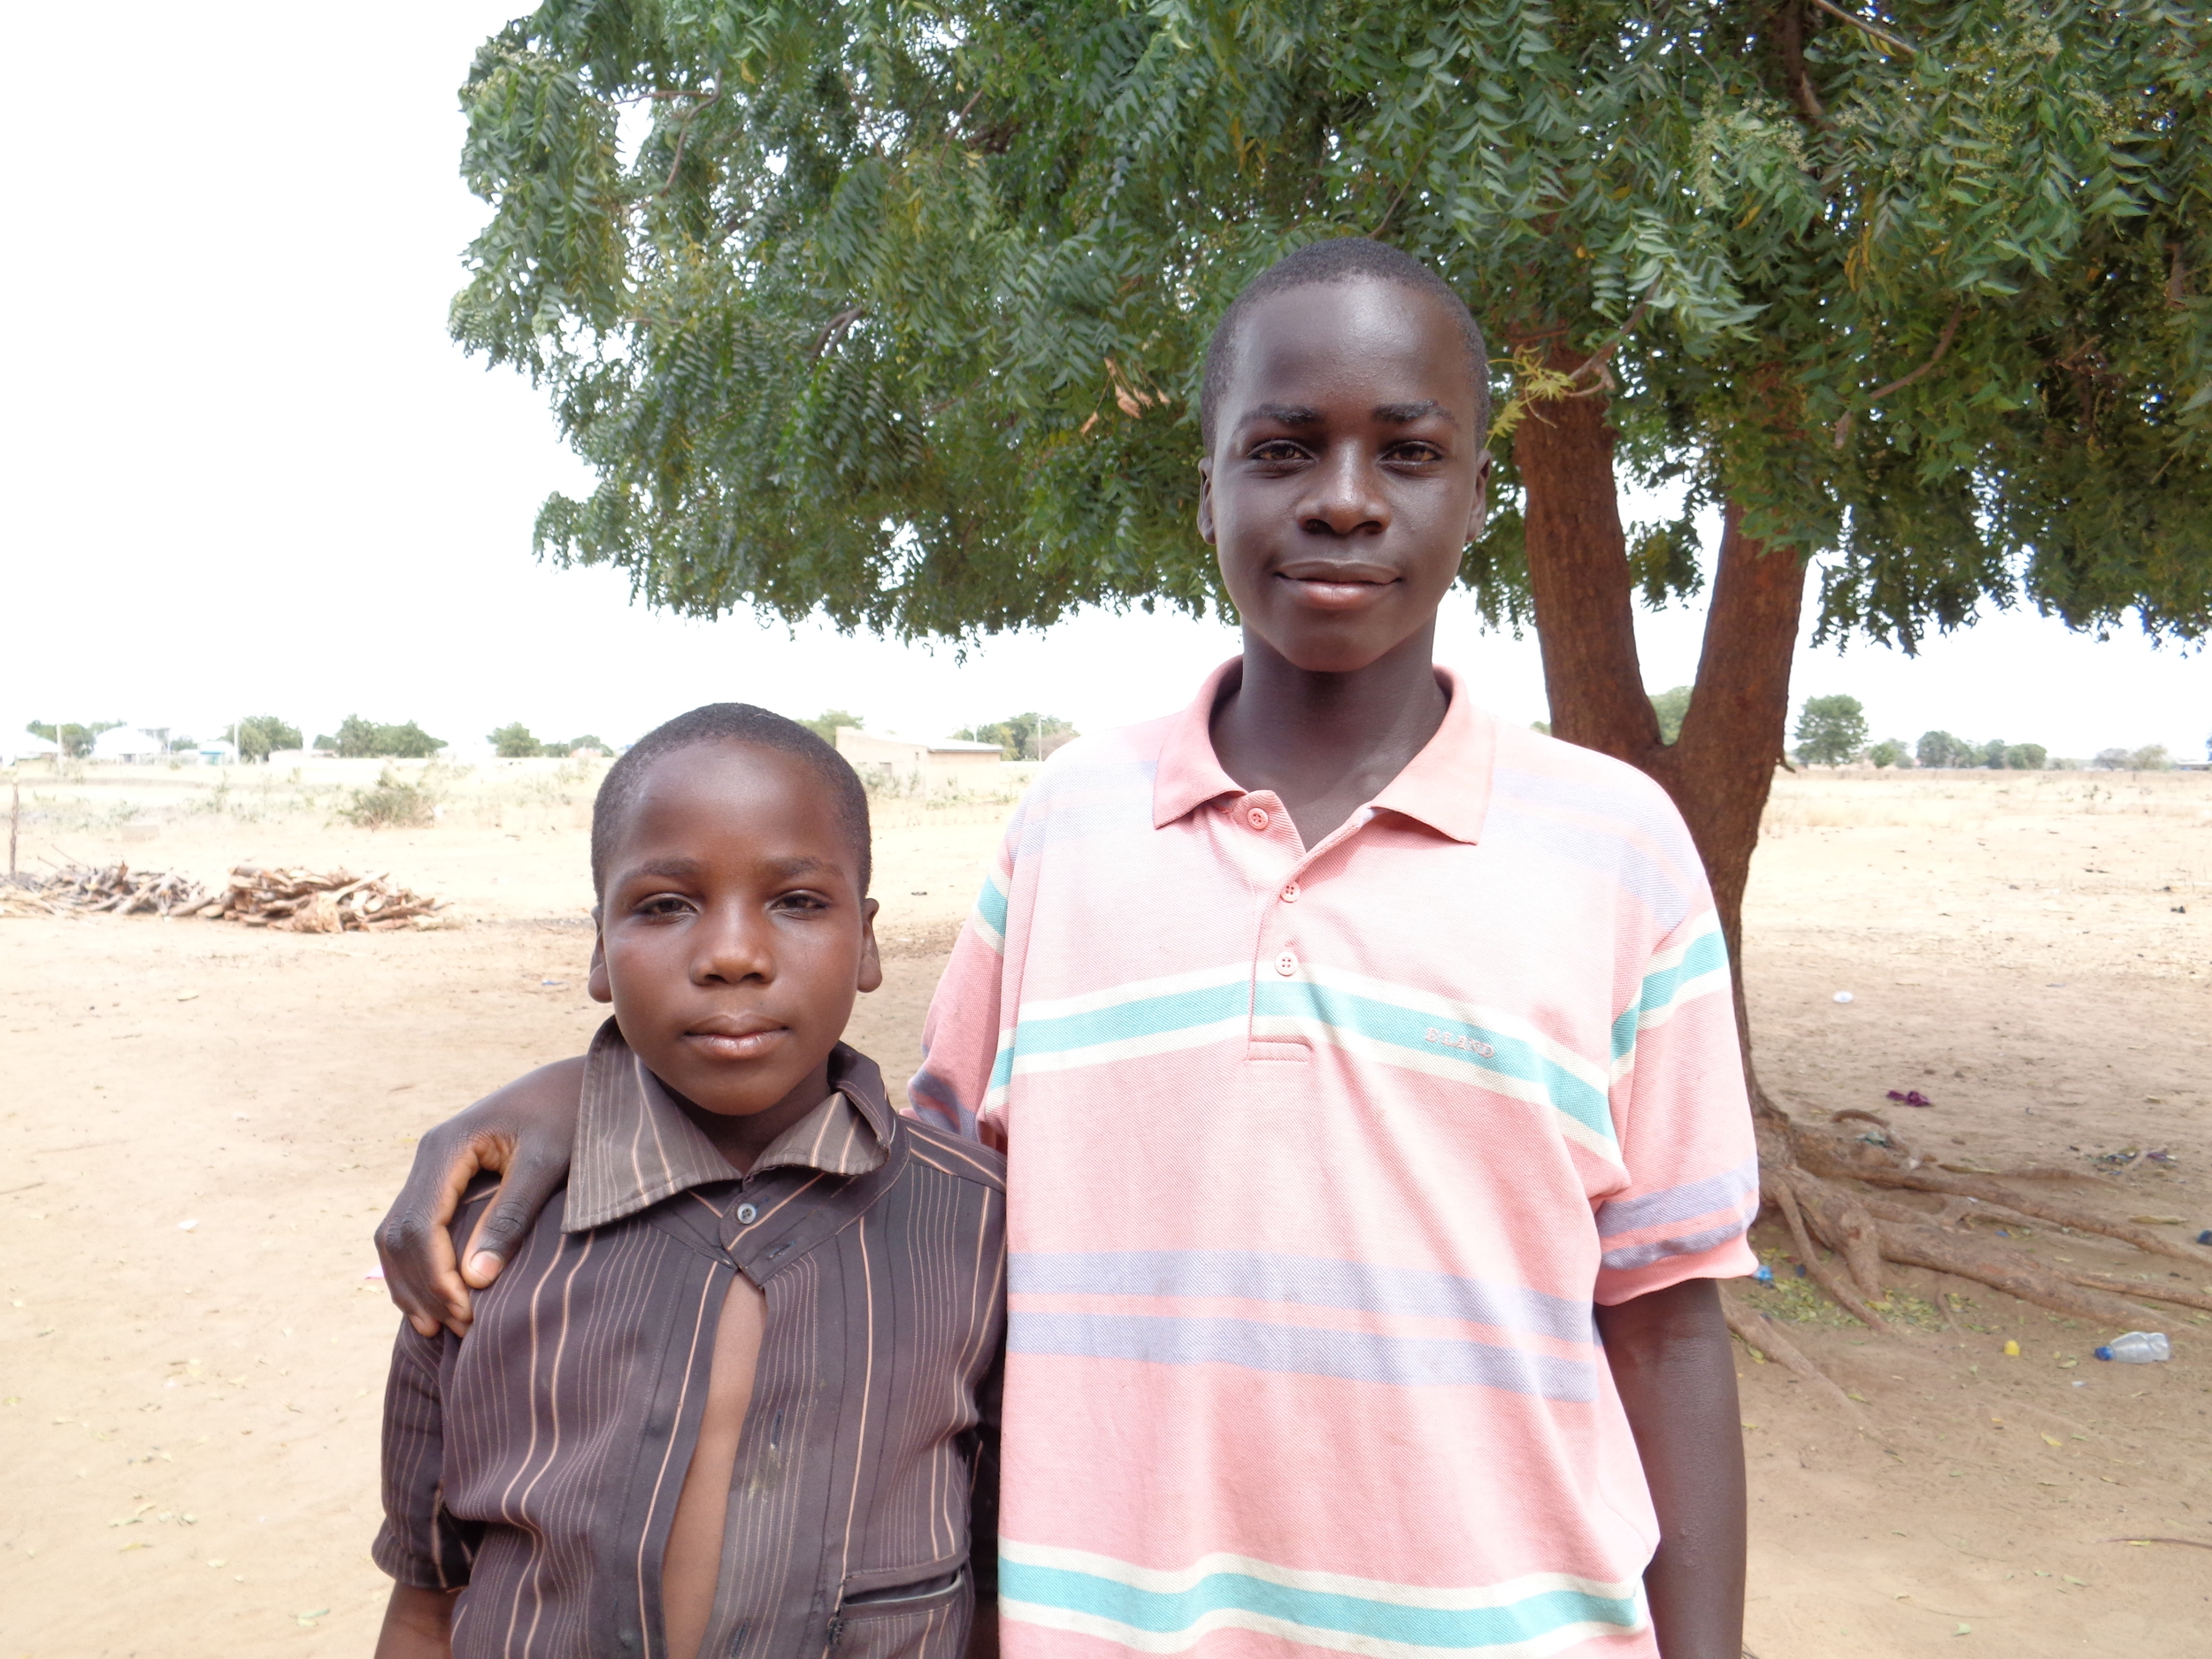 Friday (on the right) was just 15-years-old when Boko Haram attacked his village in November 2014. His older brother was killed, and he and his five younger siblings were forced to run for their lives. They are now living as IDPs with their aunt in Maiduguri.